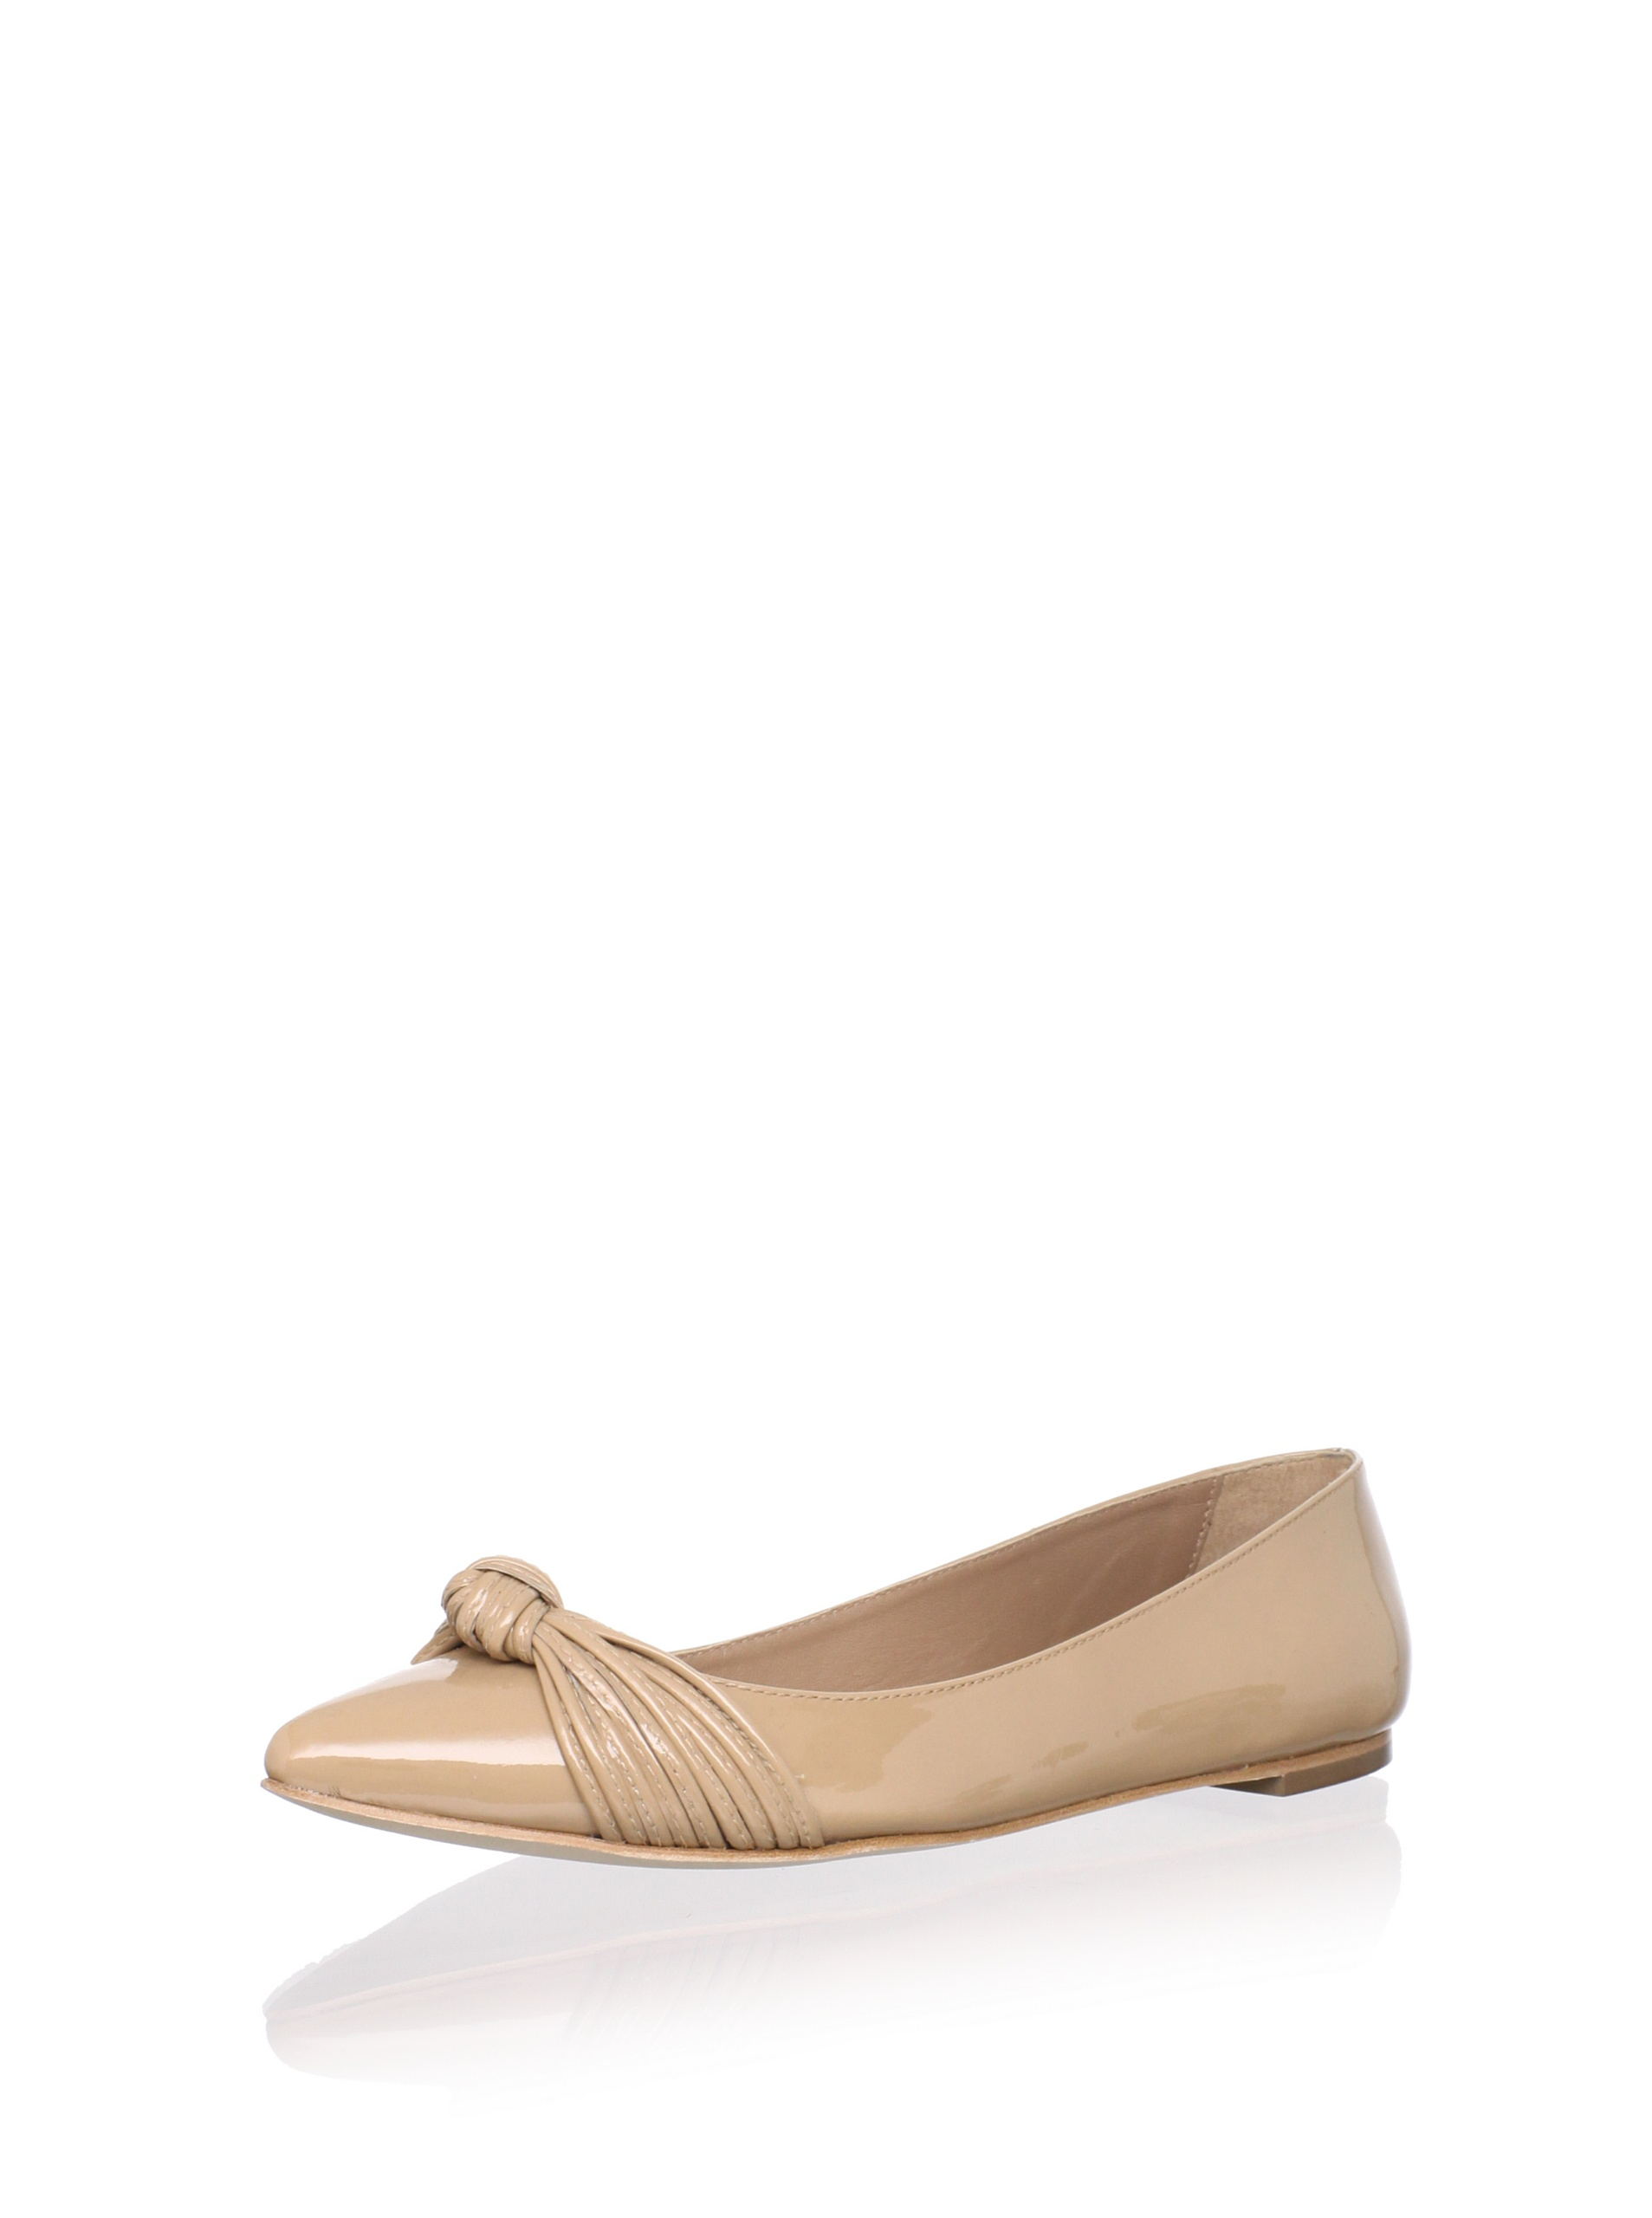 Loeffler Randall Women's Willow Flat with Mignon Knot (Tan)